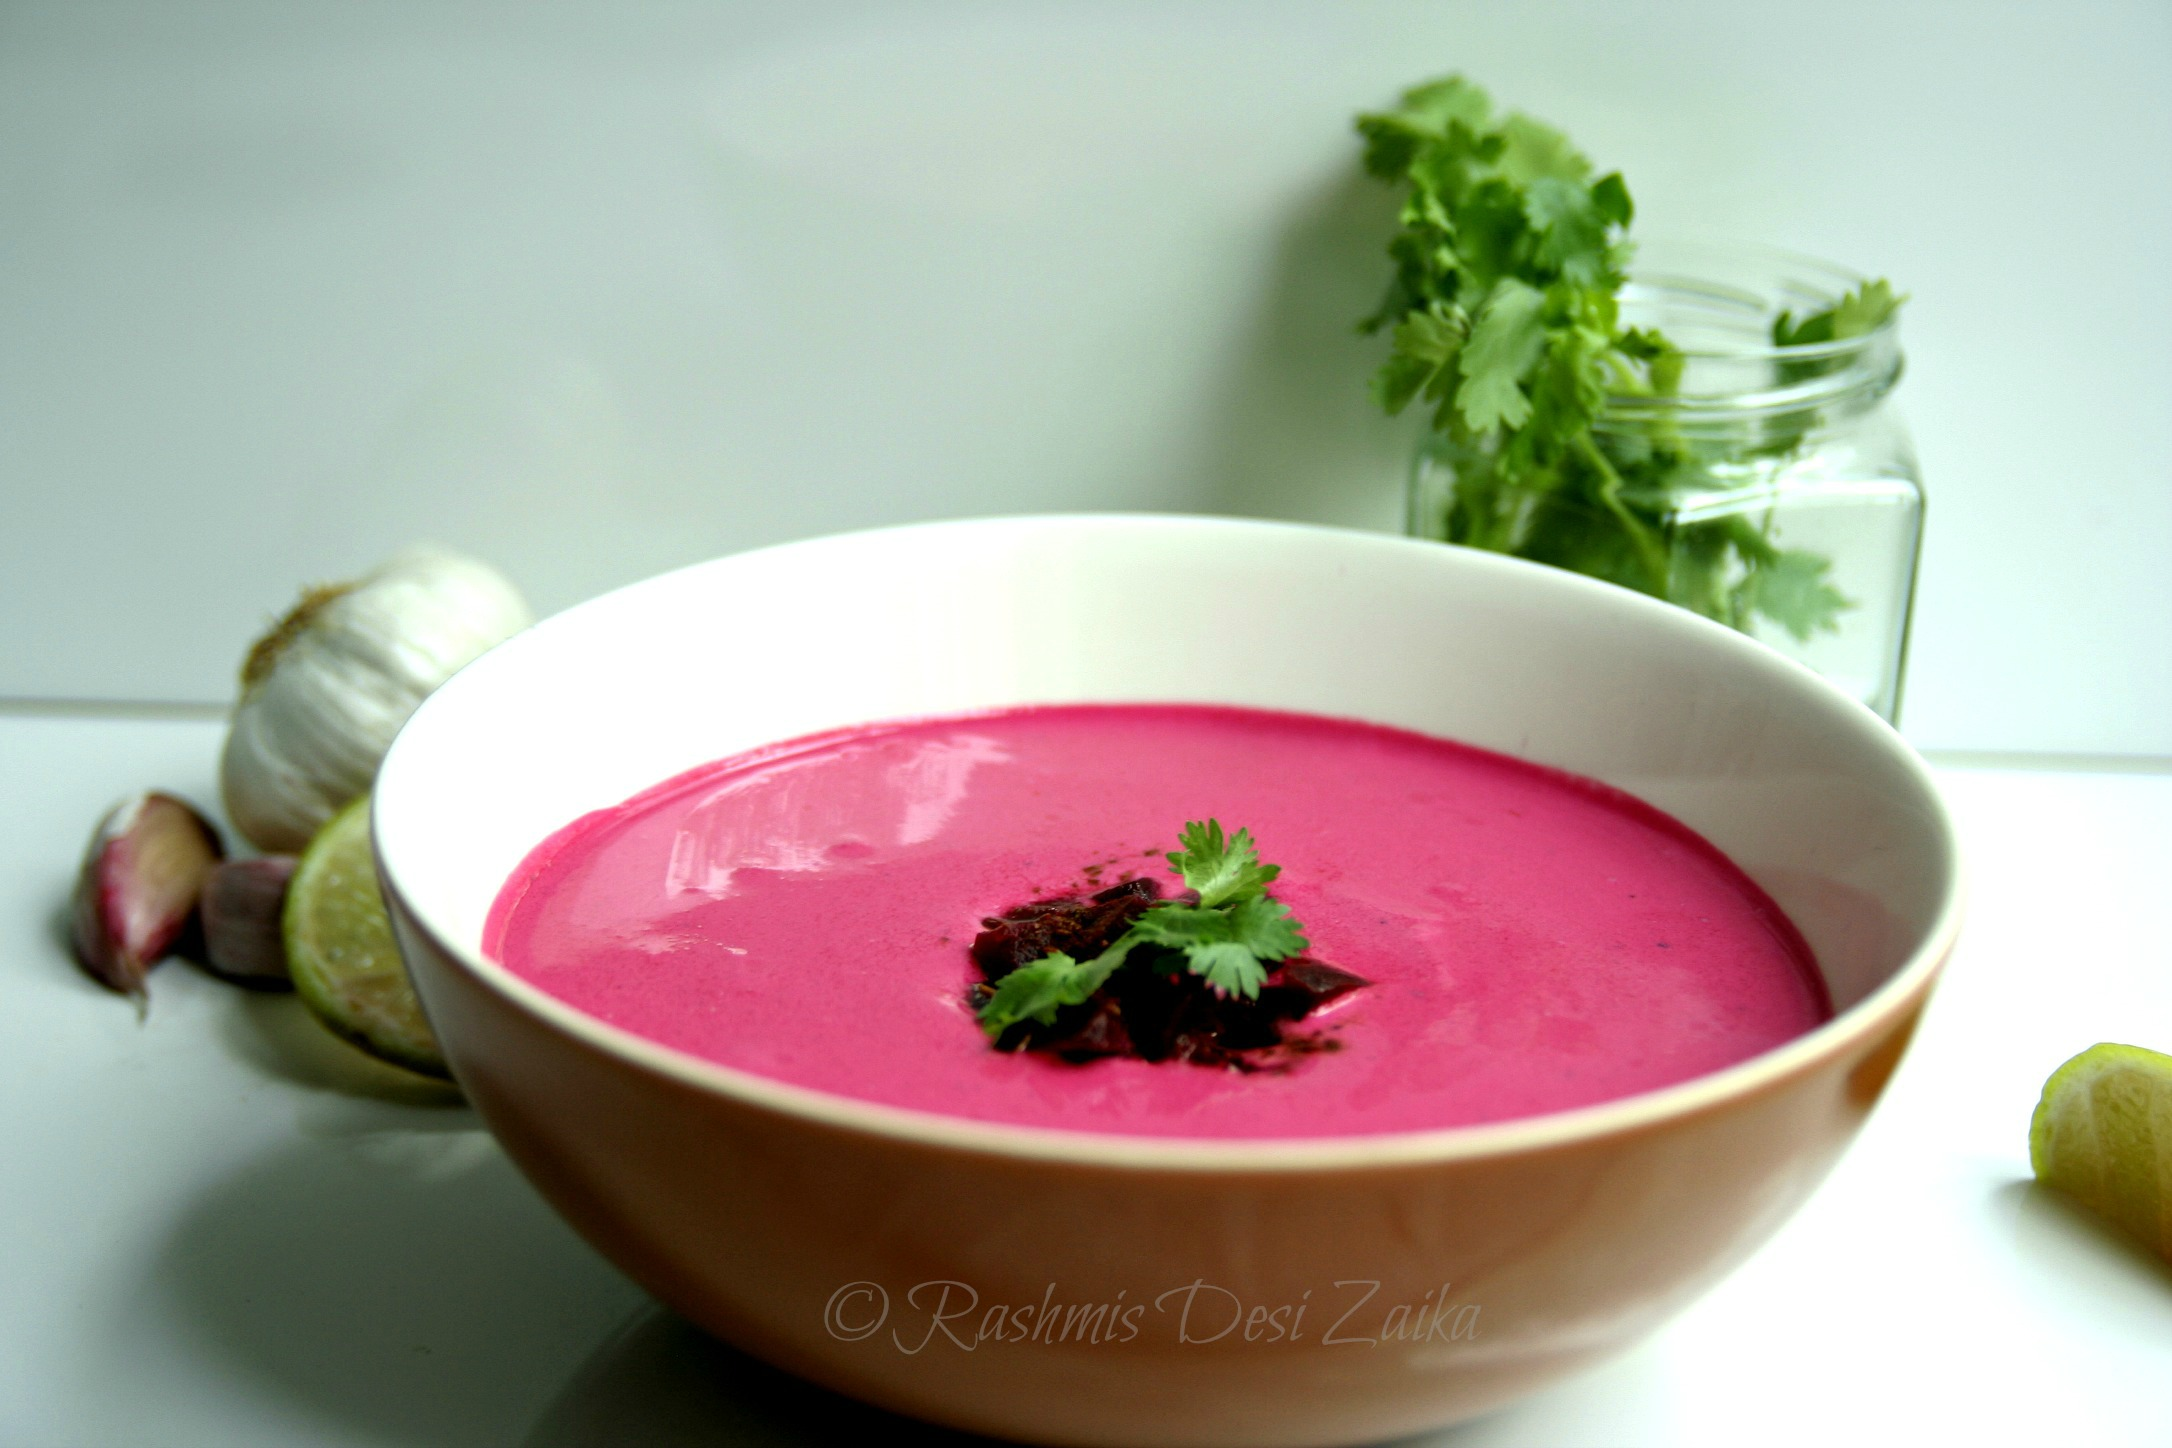 Roasted Beetroot and Garlic Raita